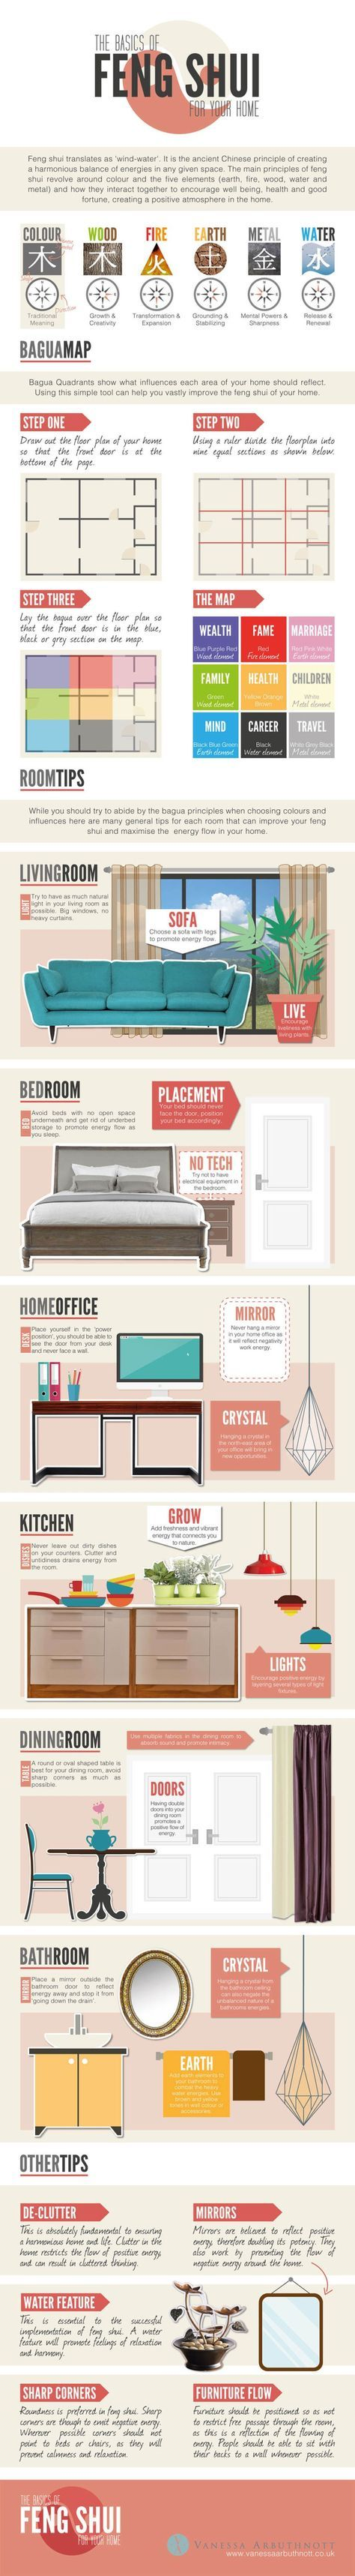 feng shui furniture placement. feng shui for the home guide infographic furniture placement e